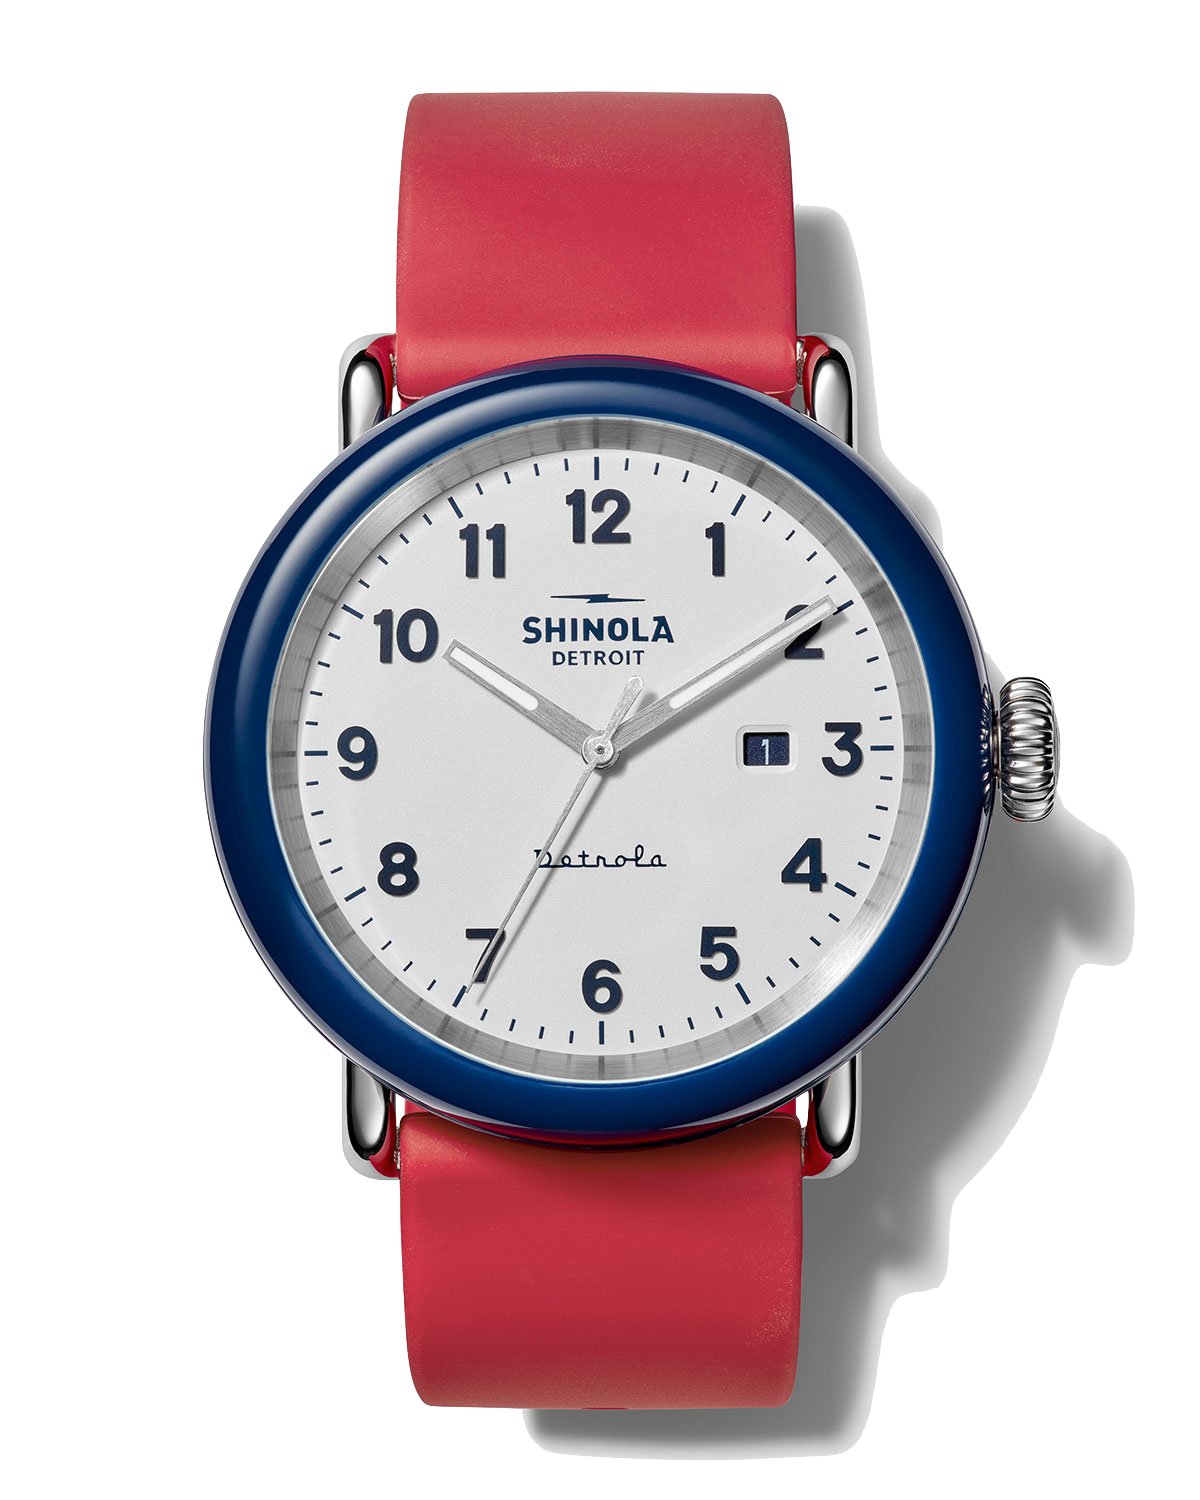 Shinola Men's Detrola The Ace 43mm Silicone Watch